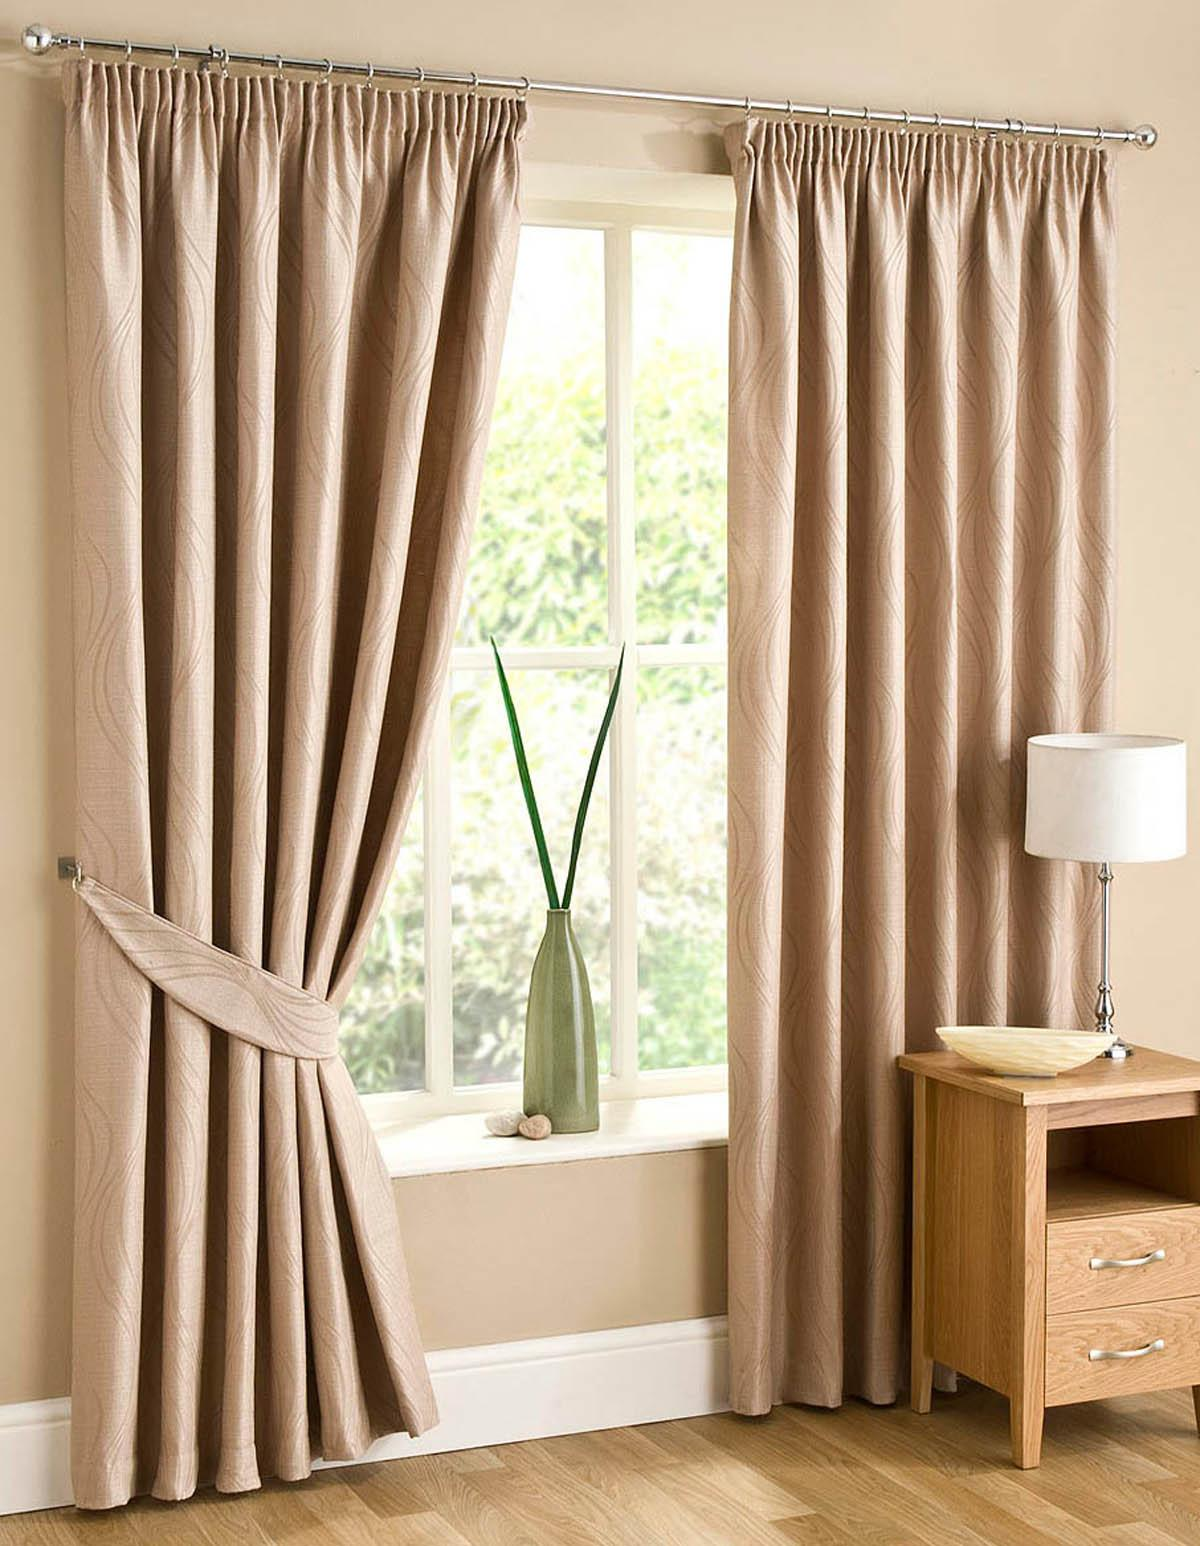 Swirl Lined Ready Made Curtains Part 70